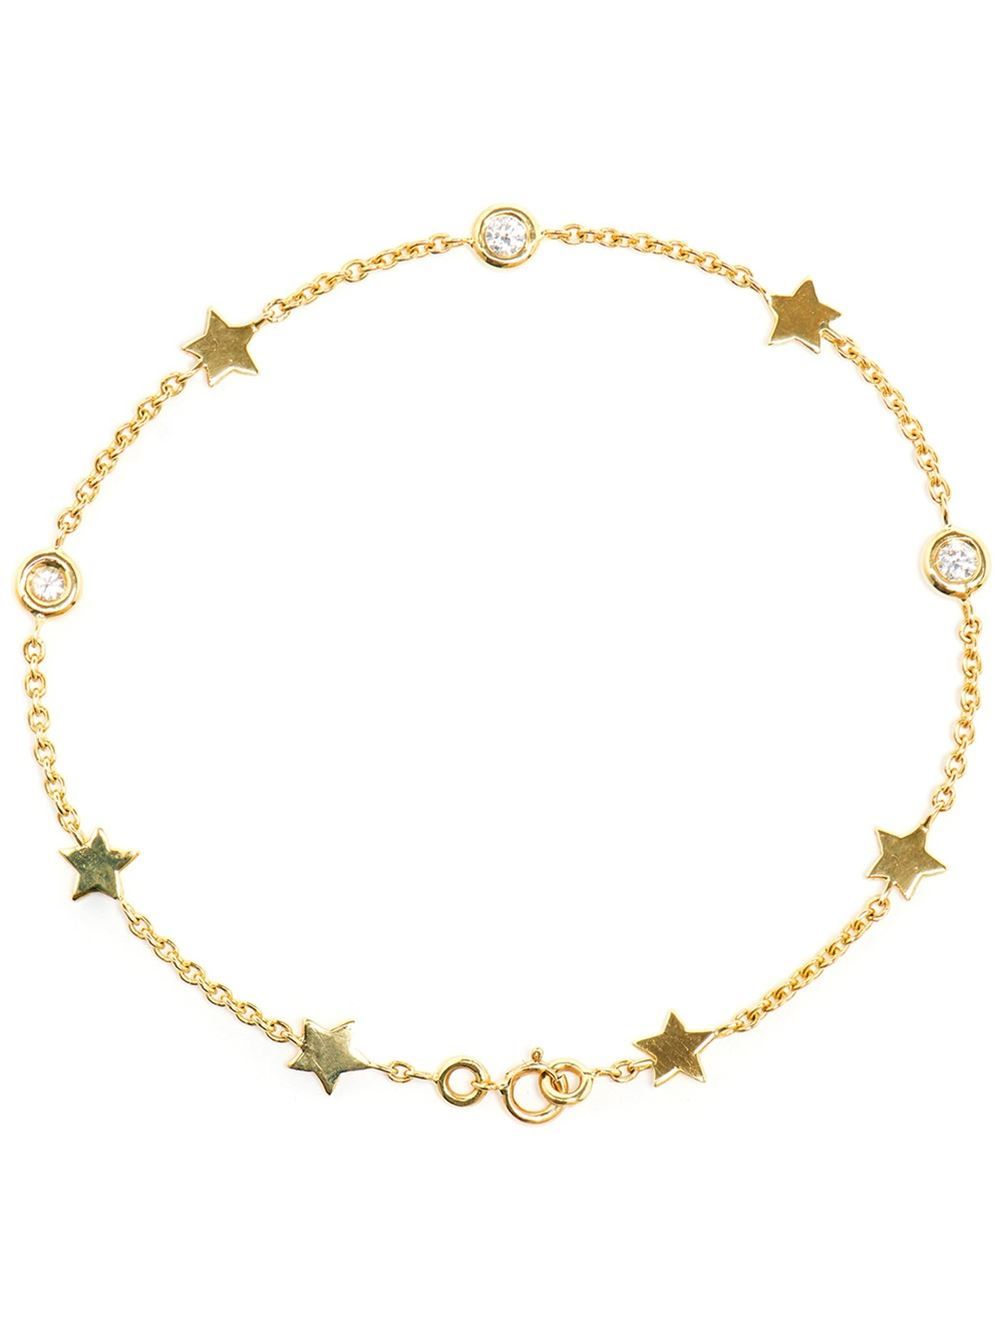 Luis miguel howard kt gold and diamond star bracelet jewelry